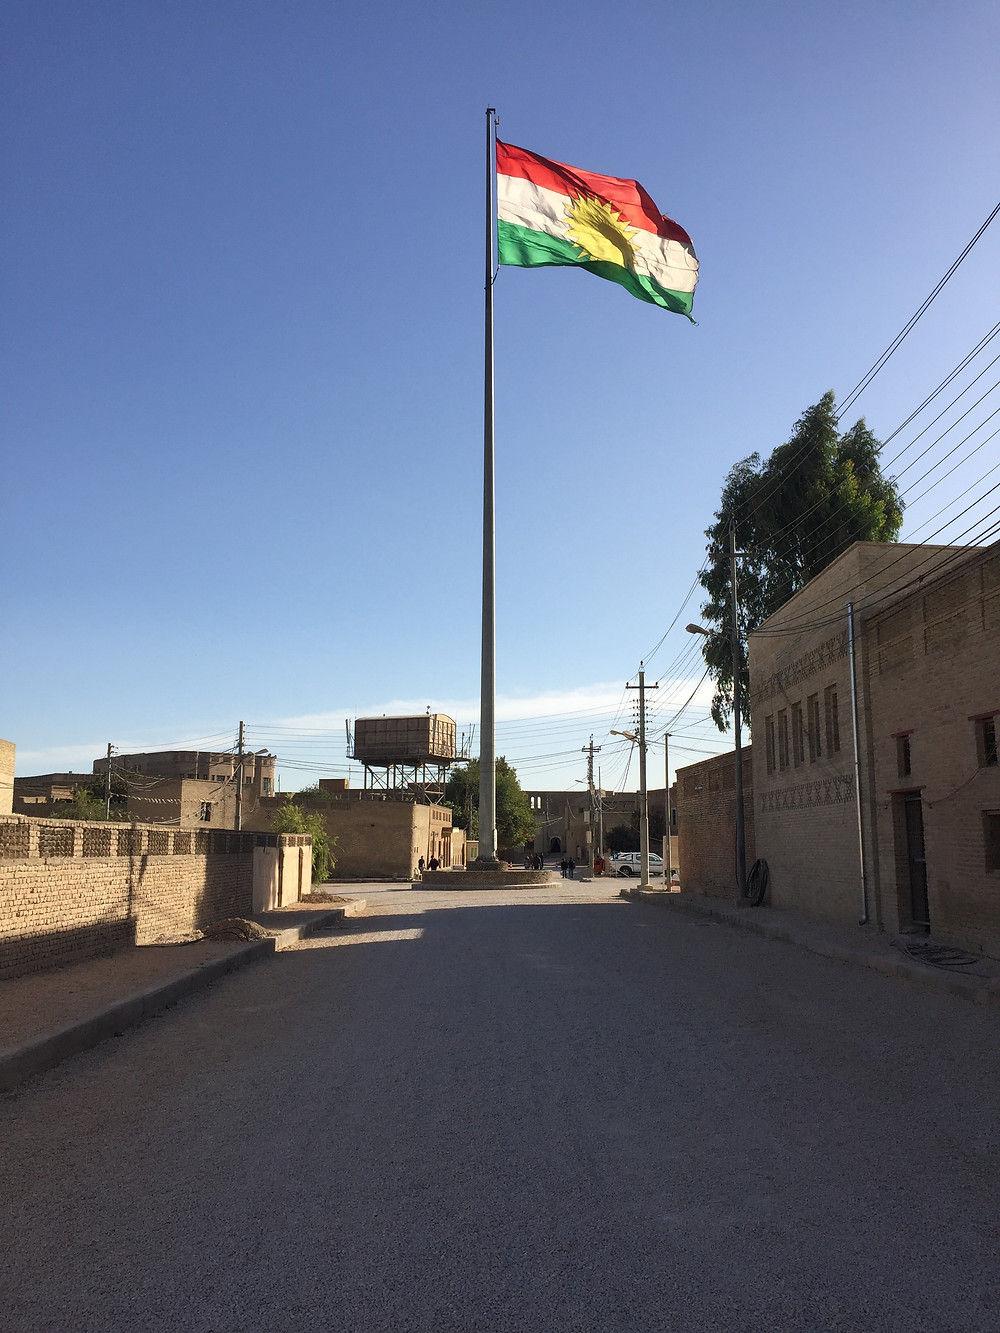 Kurdish Flag in Erbil